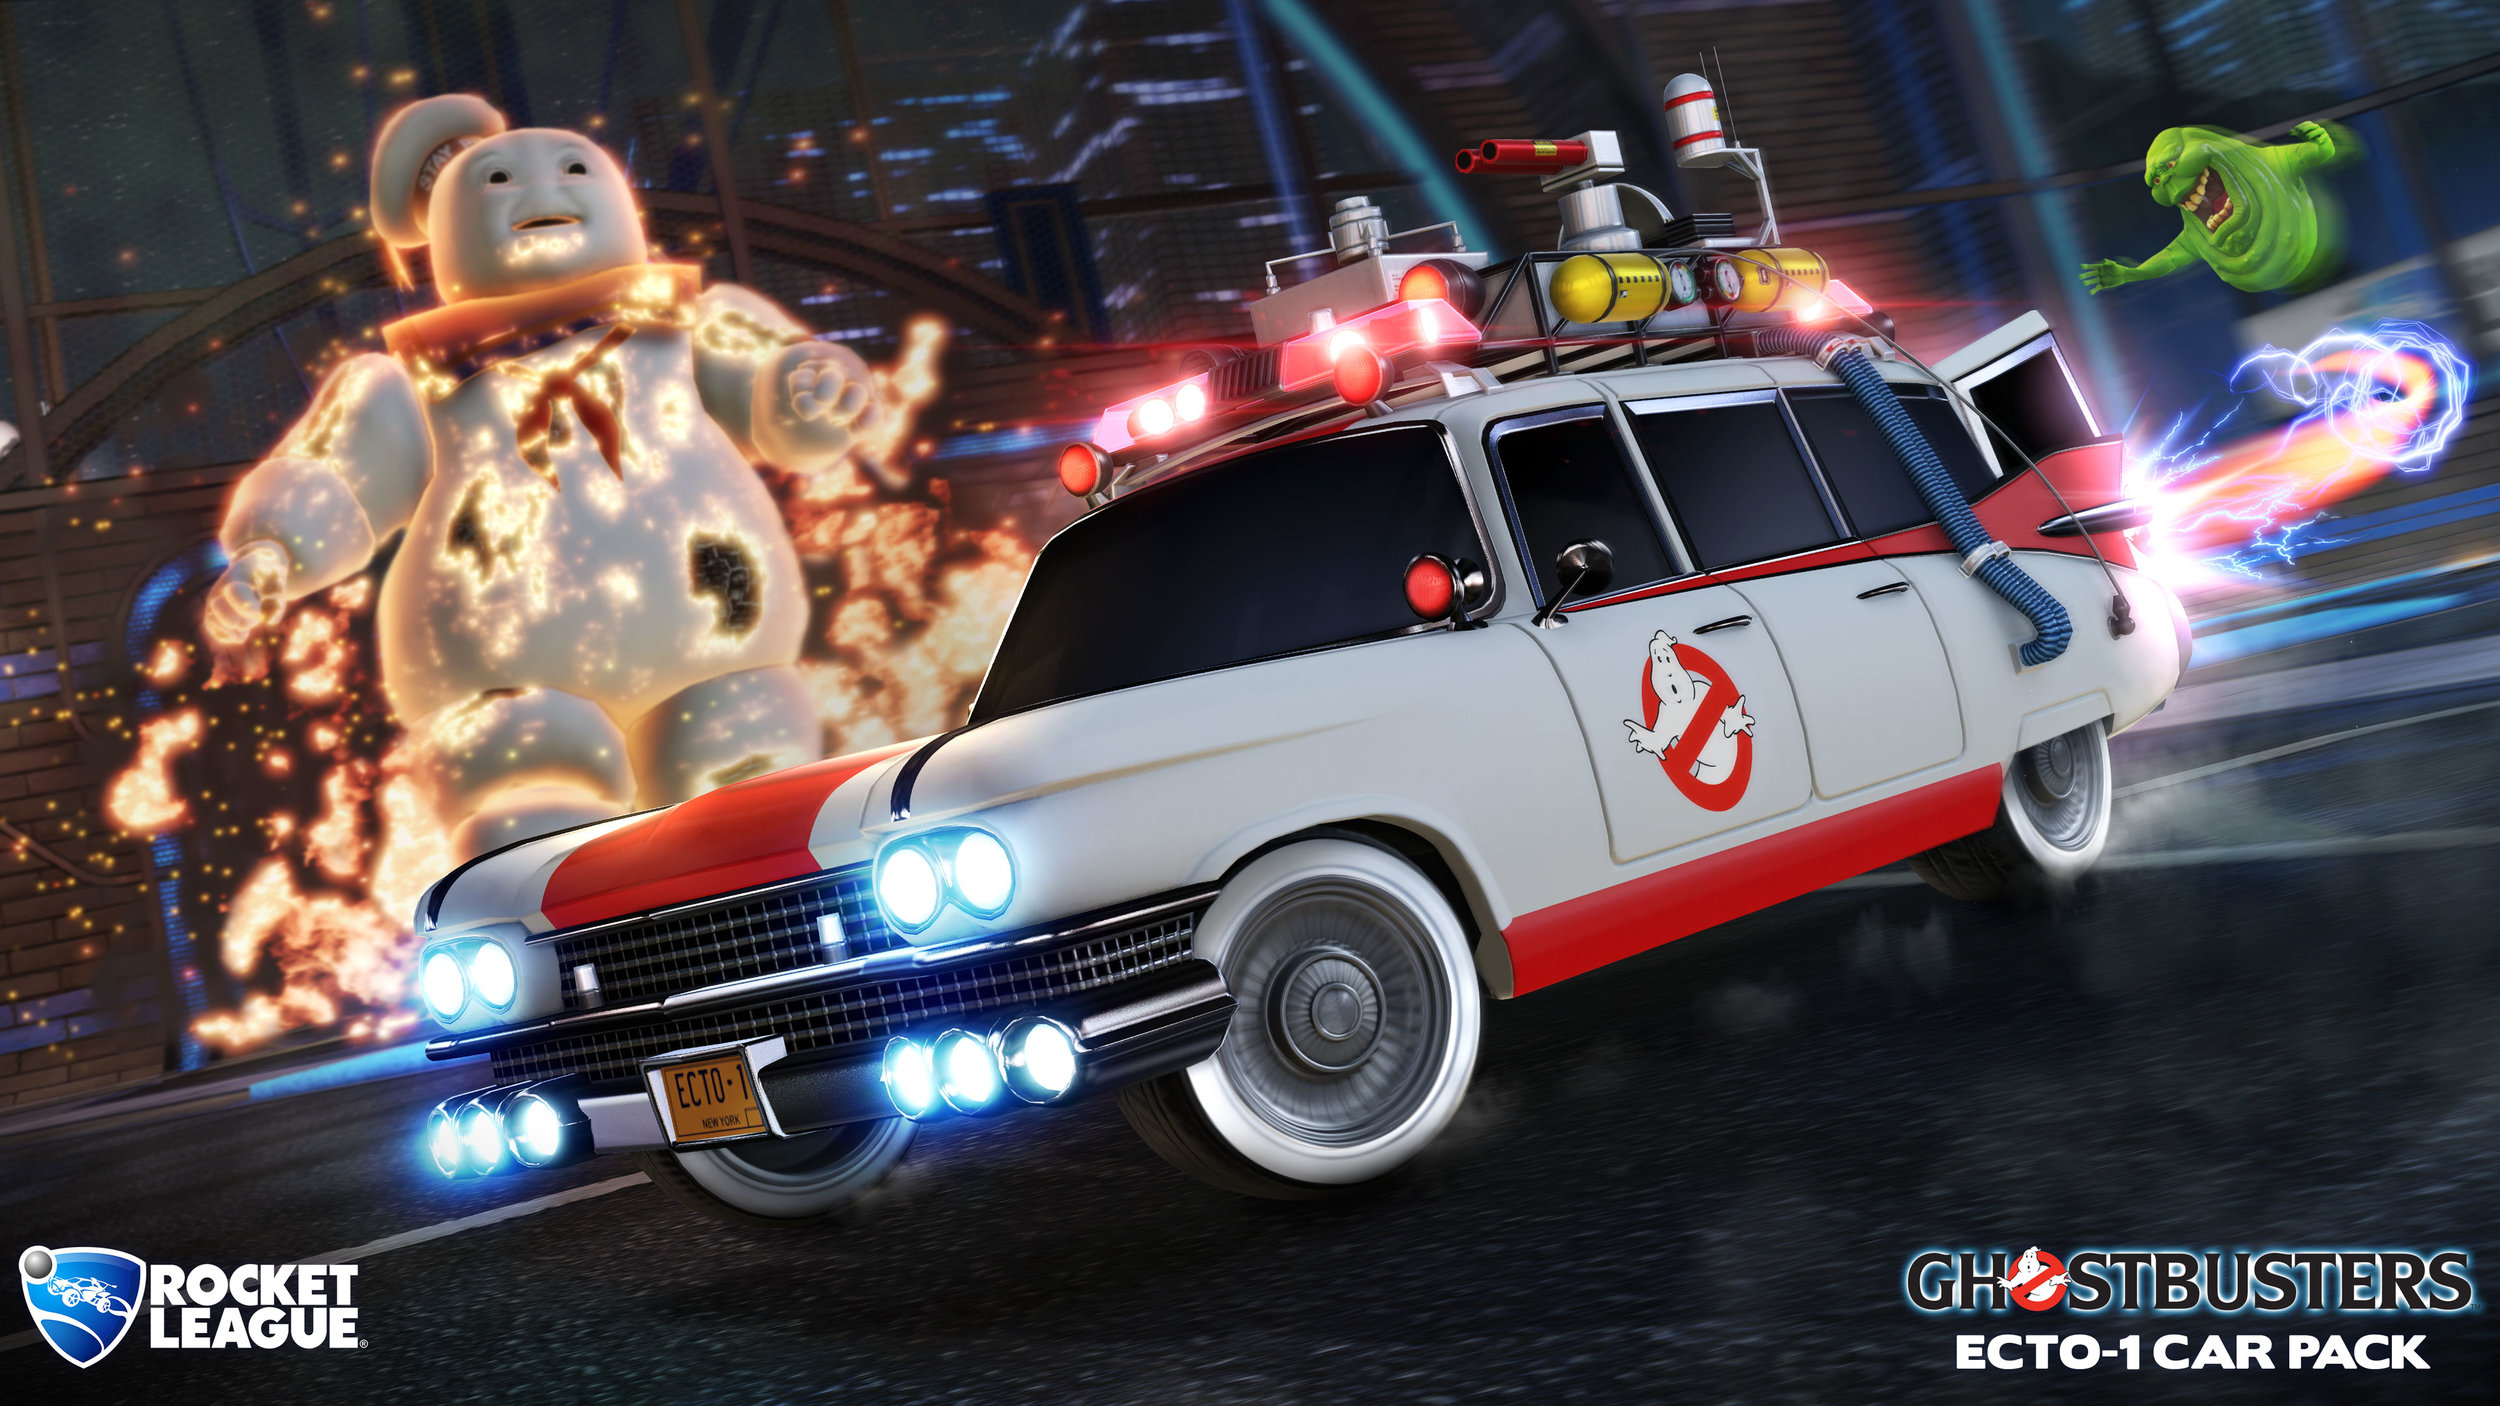 ghostbusters-car-pack_hero.jpg